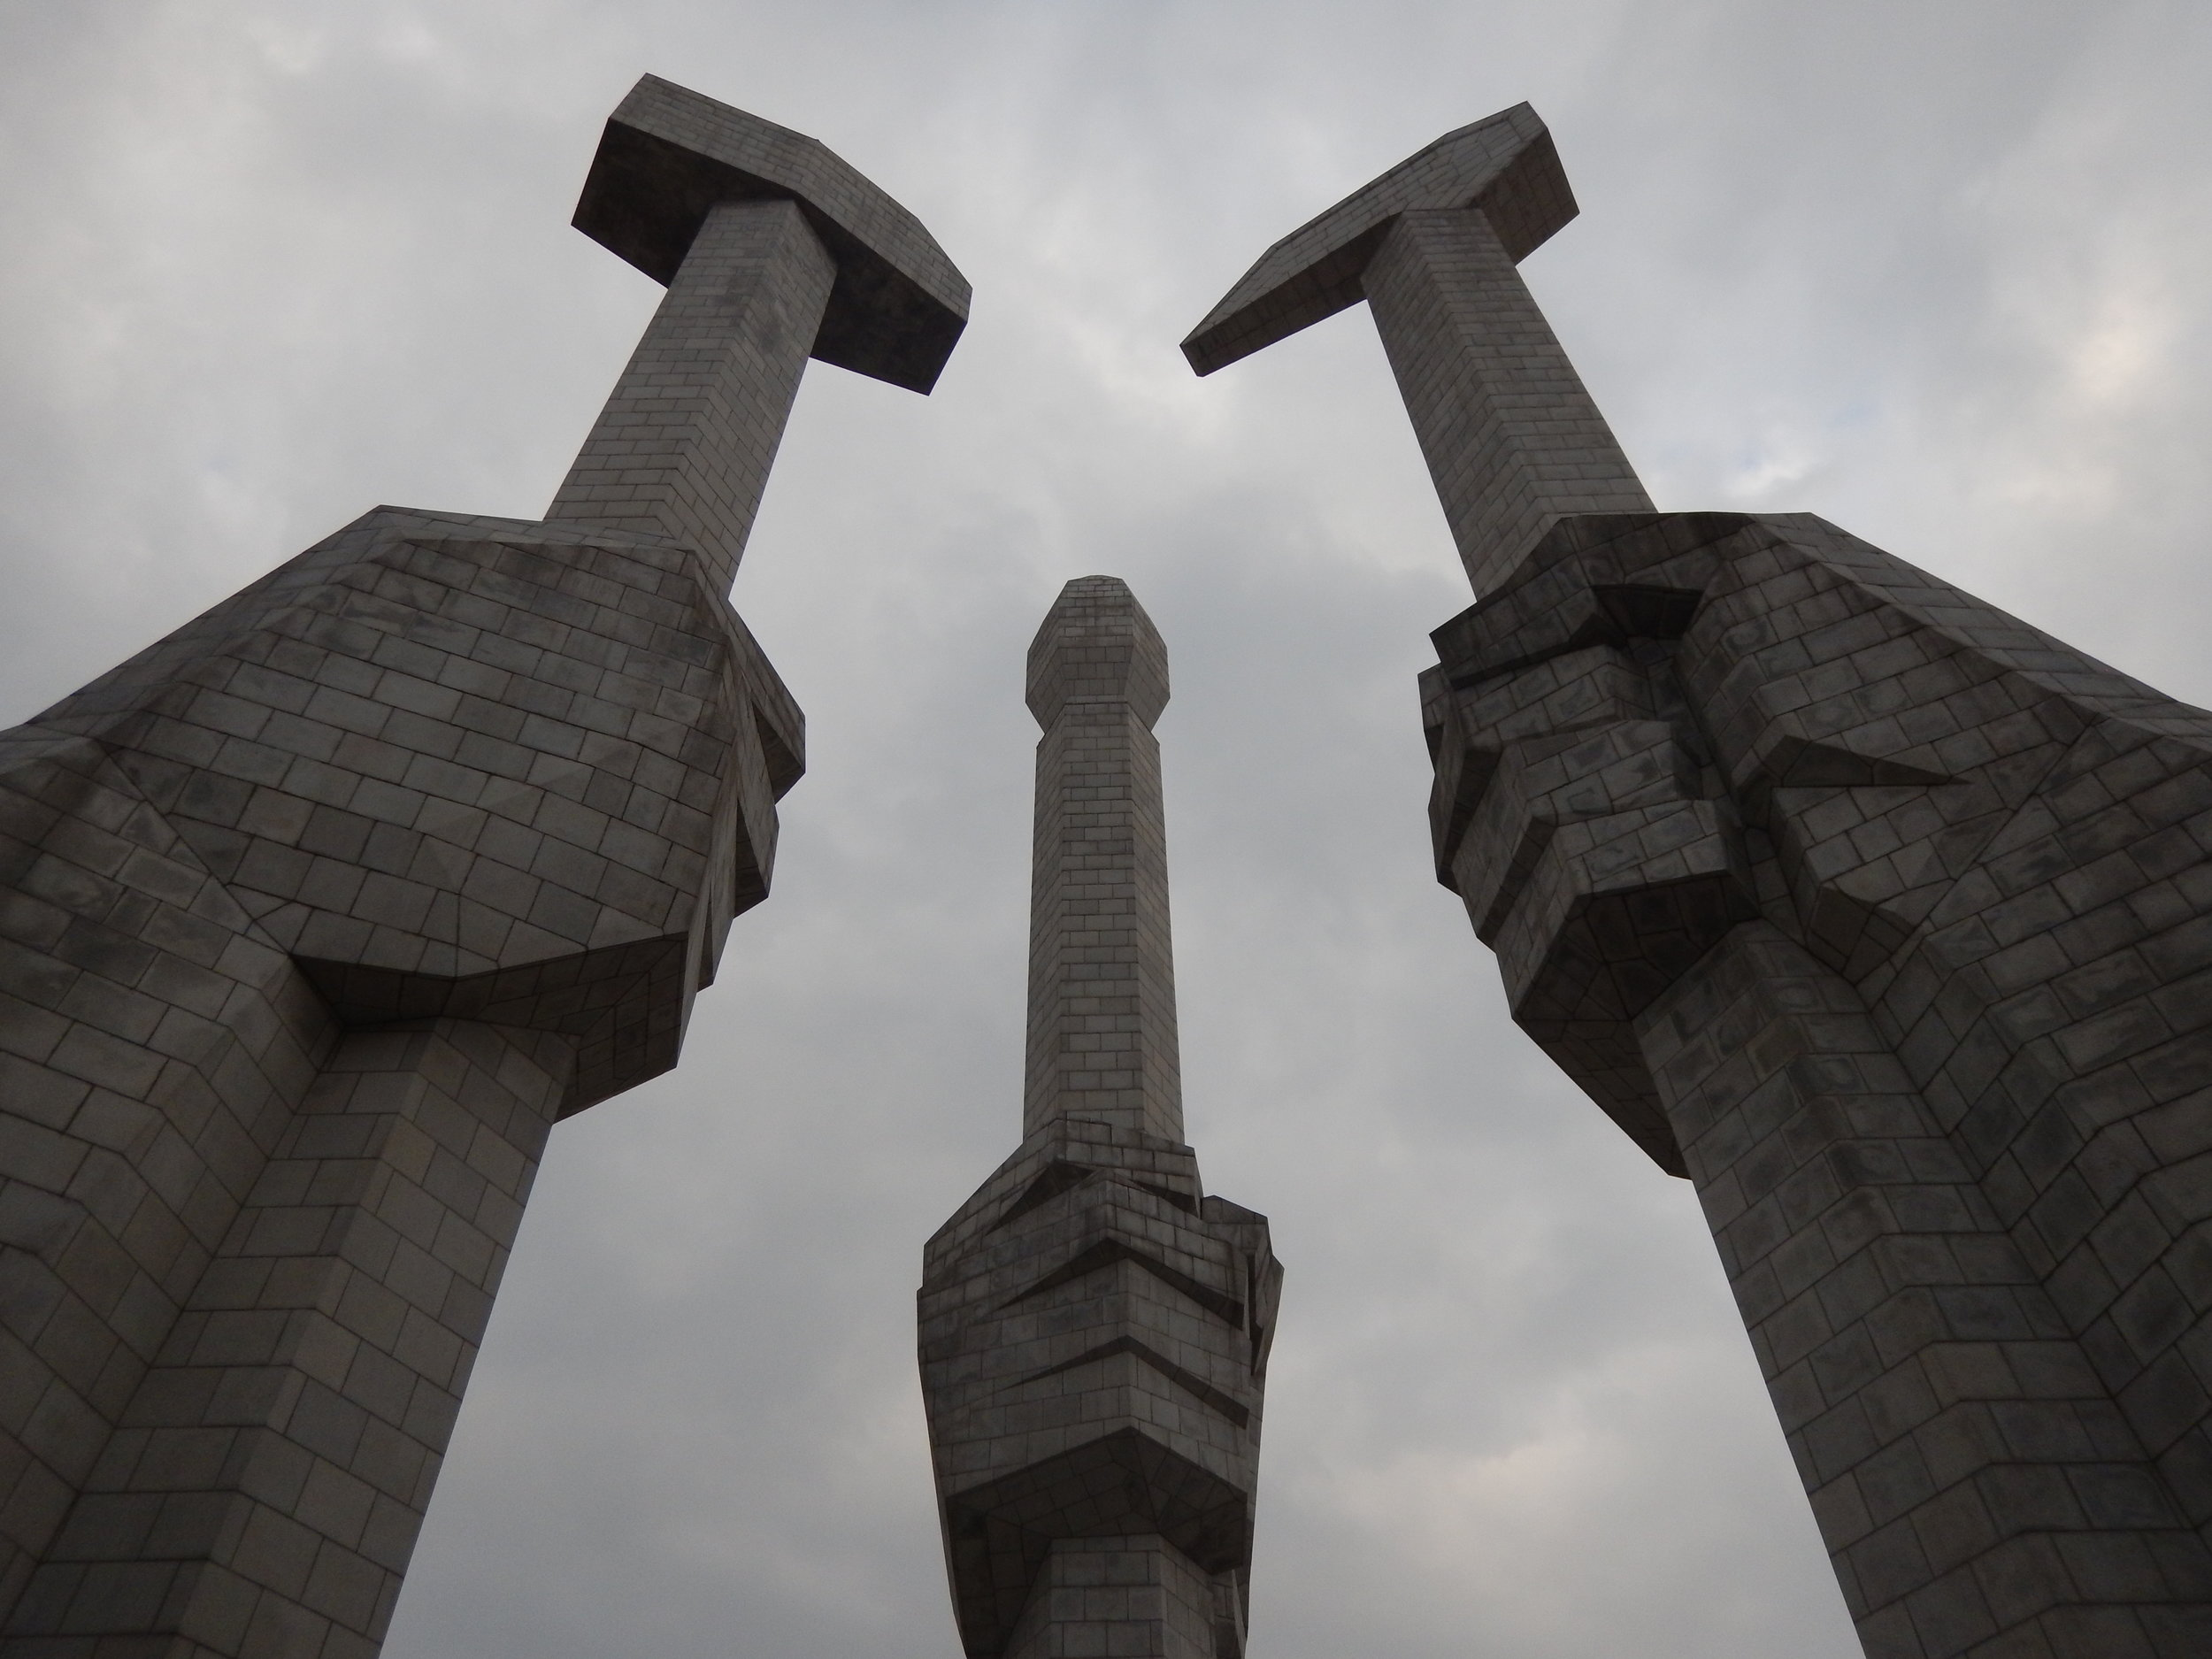 The Monument to the Foundation of the Party features three hands holding a hammer, representing the worker, a sickle, representing the farmer, and a paintbrush, representing the intellectual – these three tools are the official symbols of the ruling Worker's Party of Korea. (Photo by Ethan Jakob Craft.)